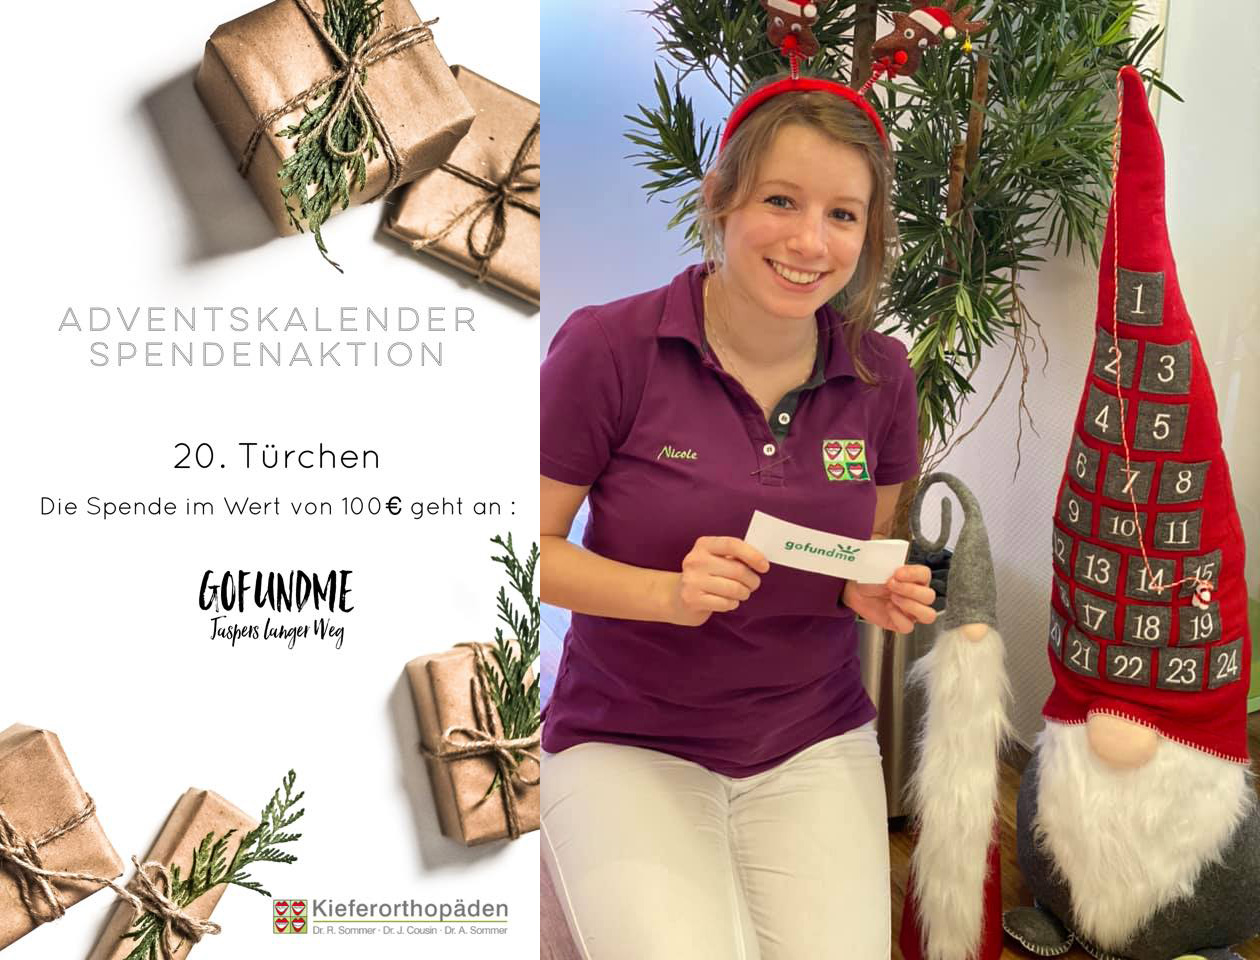 Adventskalender Spendenaktion · 20. Türchen